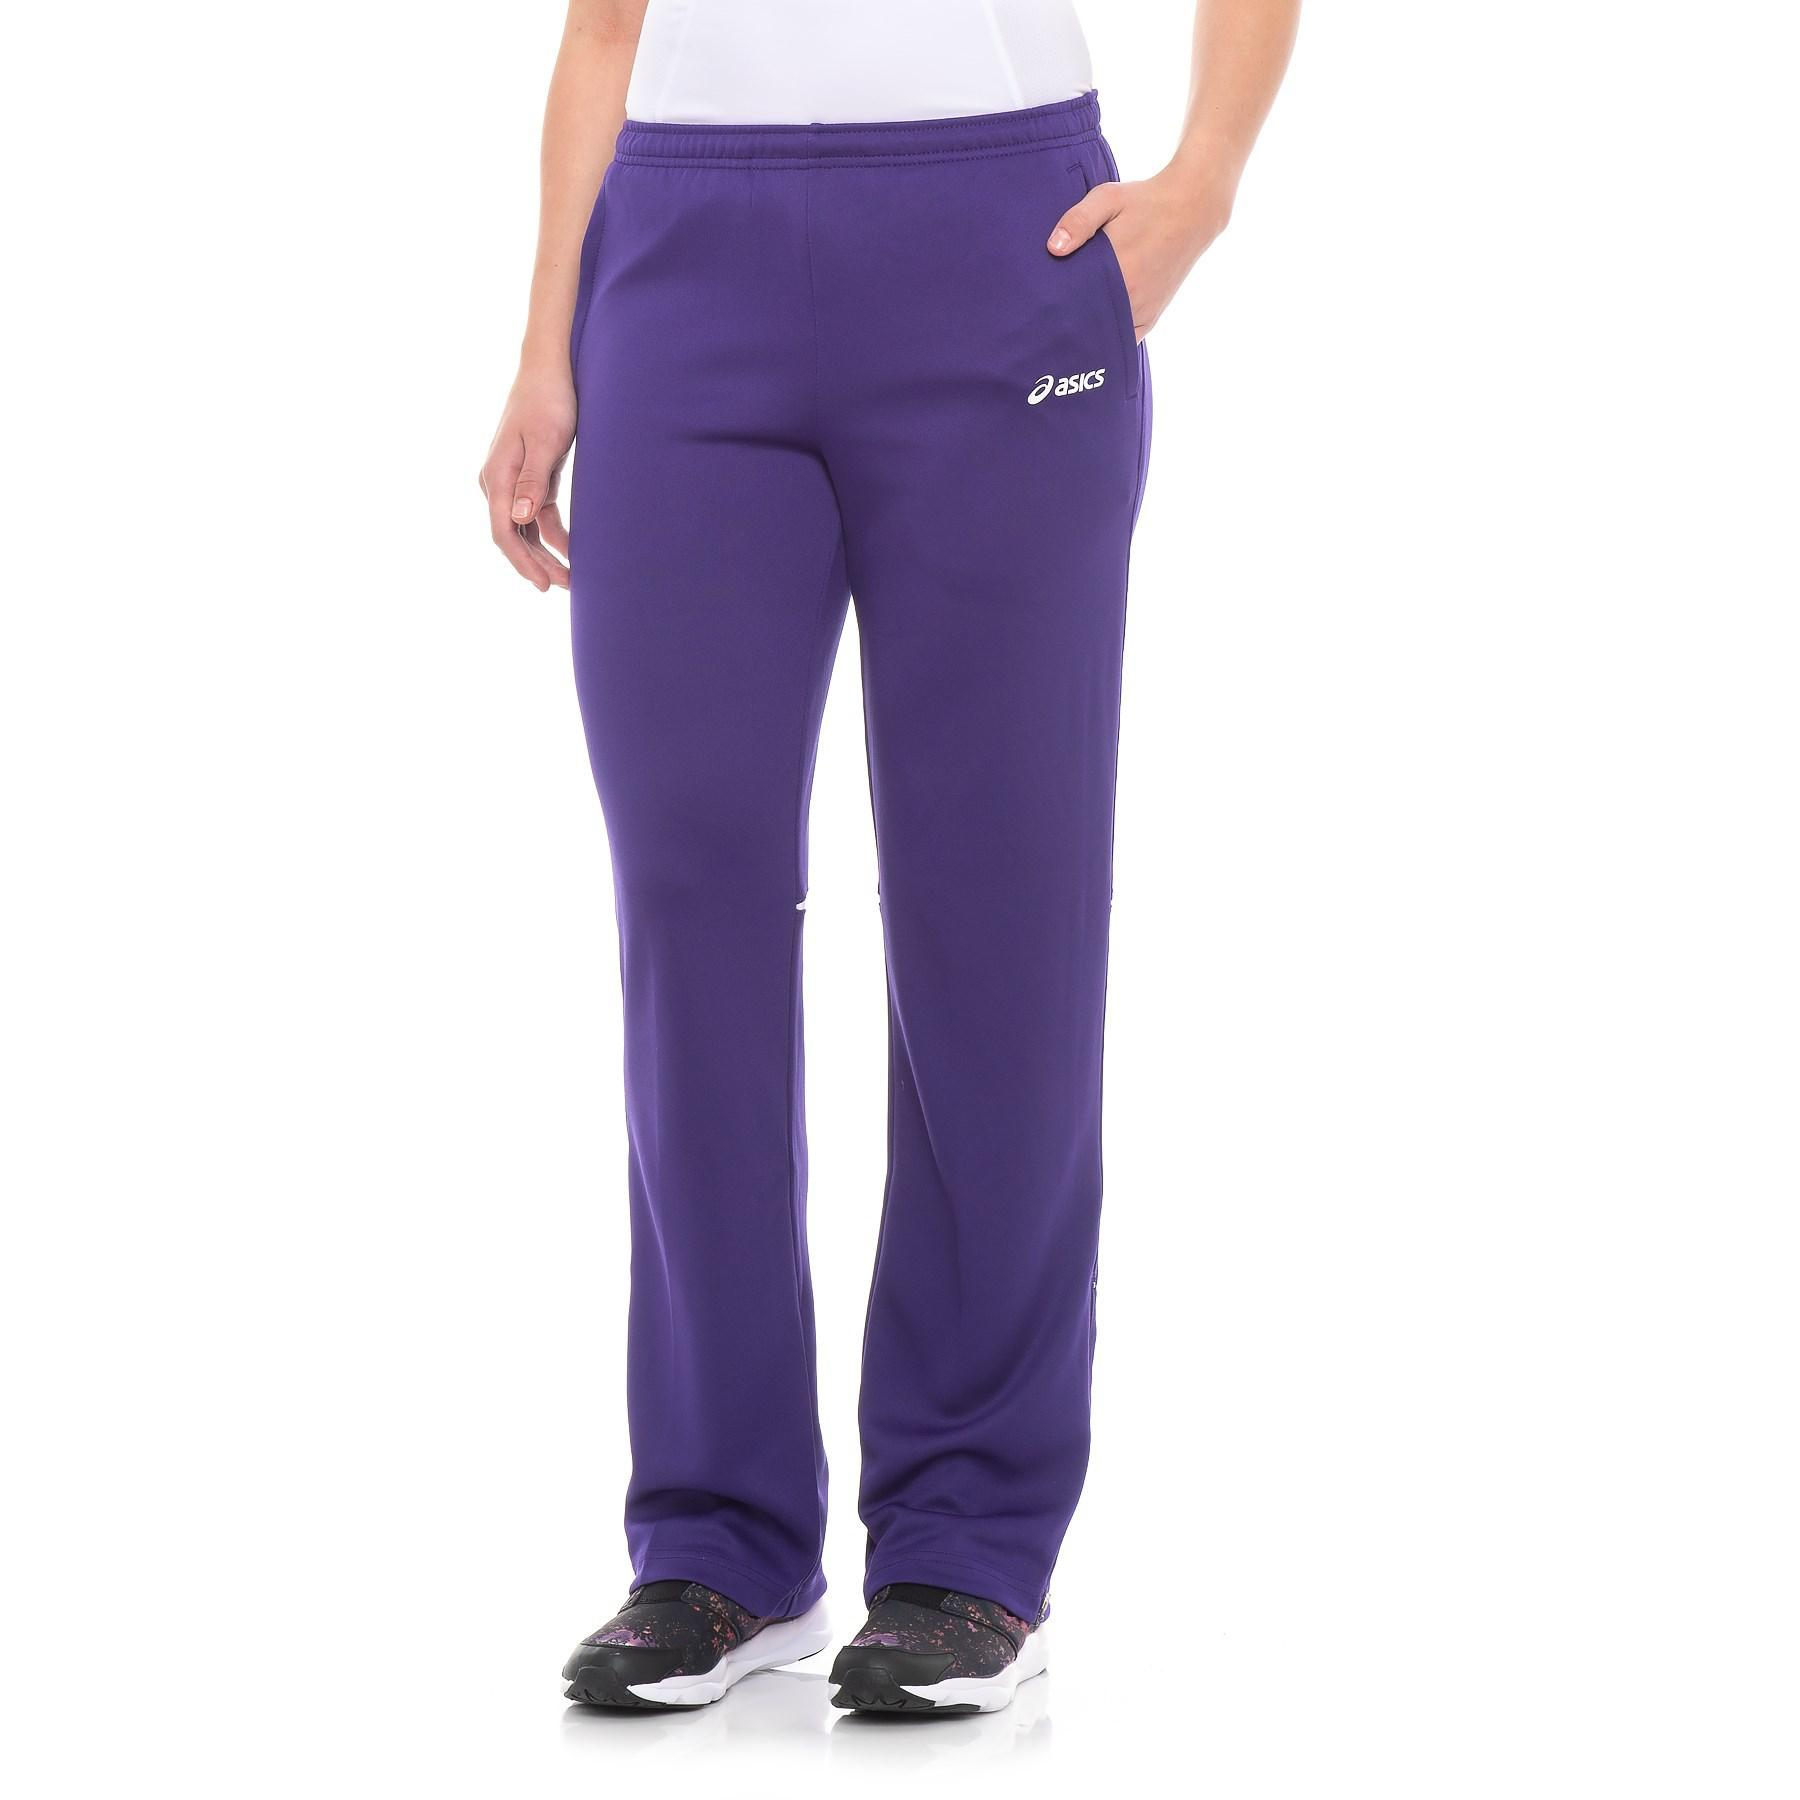 a68fc4a1d61f Lyst - Asics Cali Pants (for Women) in Purple